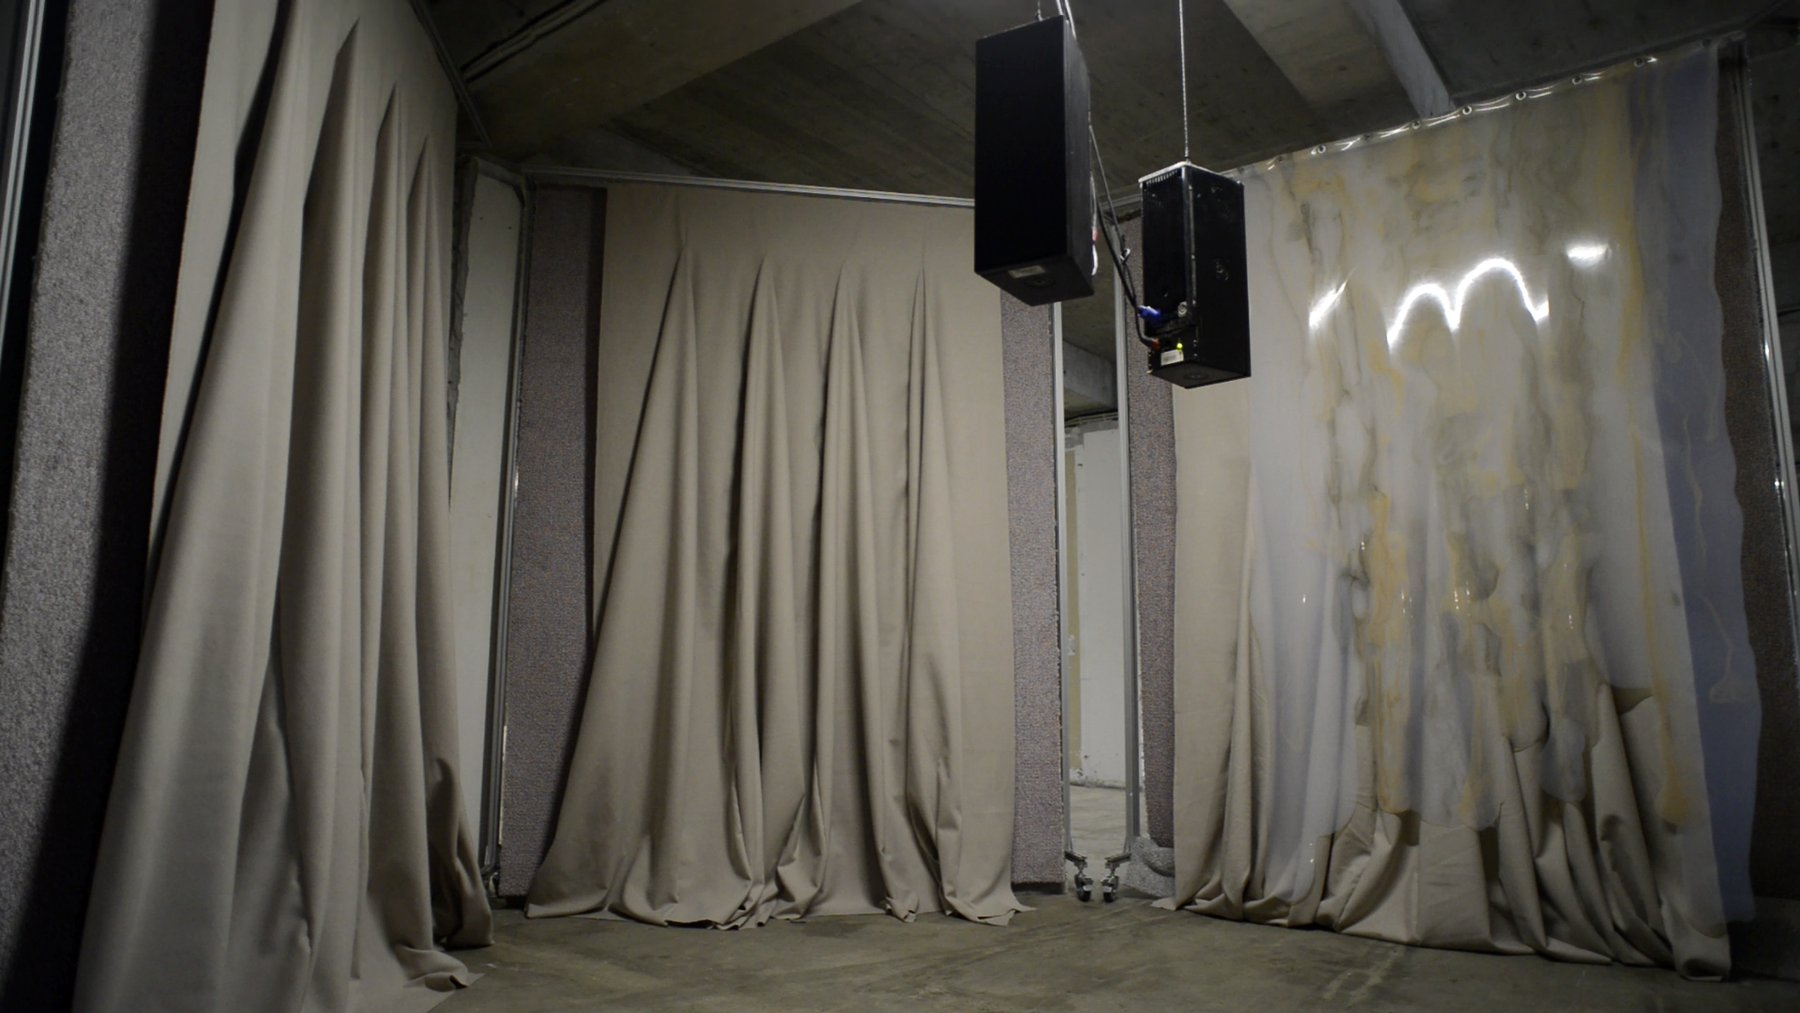 A curtained room with a speaker hanging down, Gordon Soundtracks